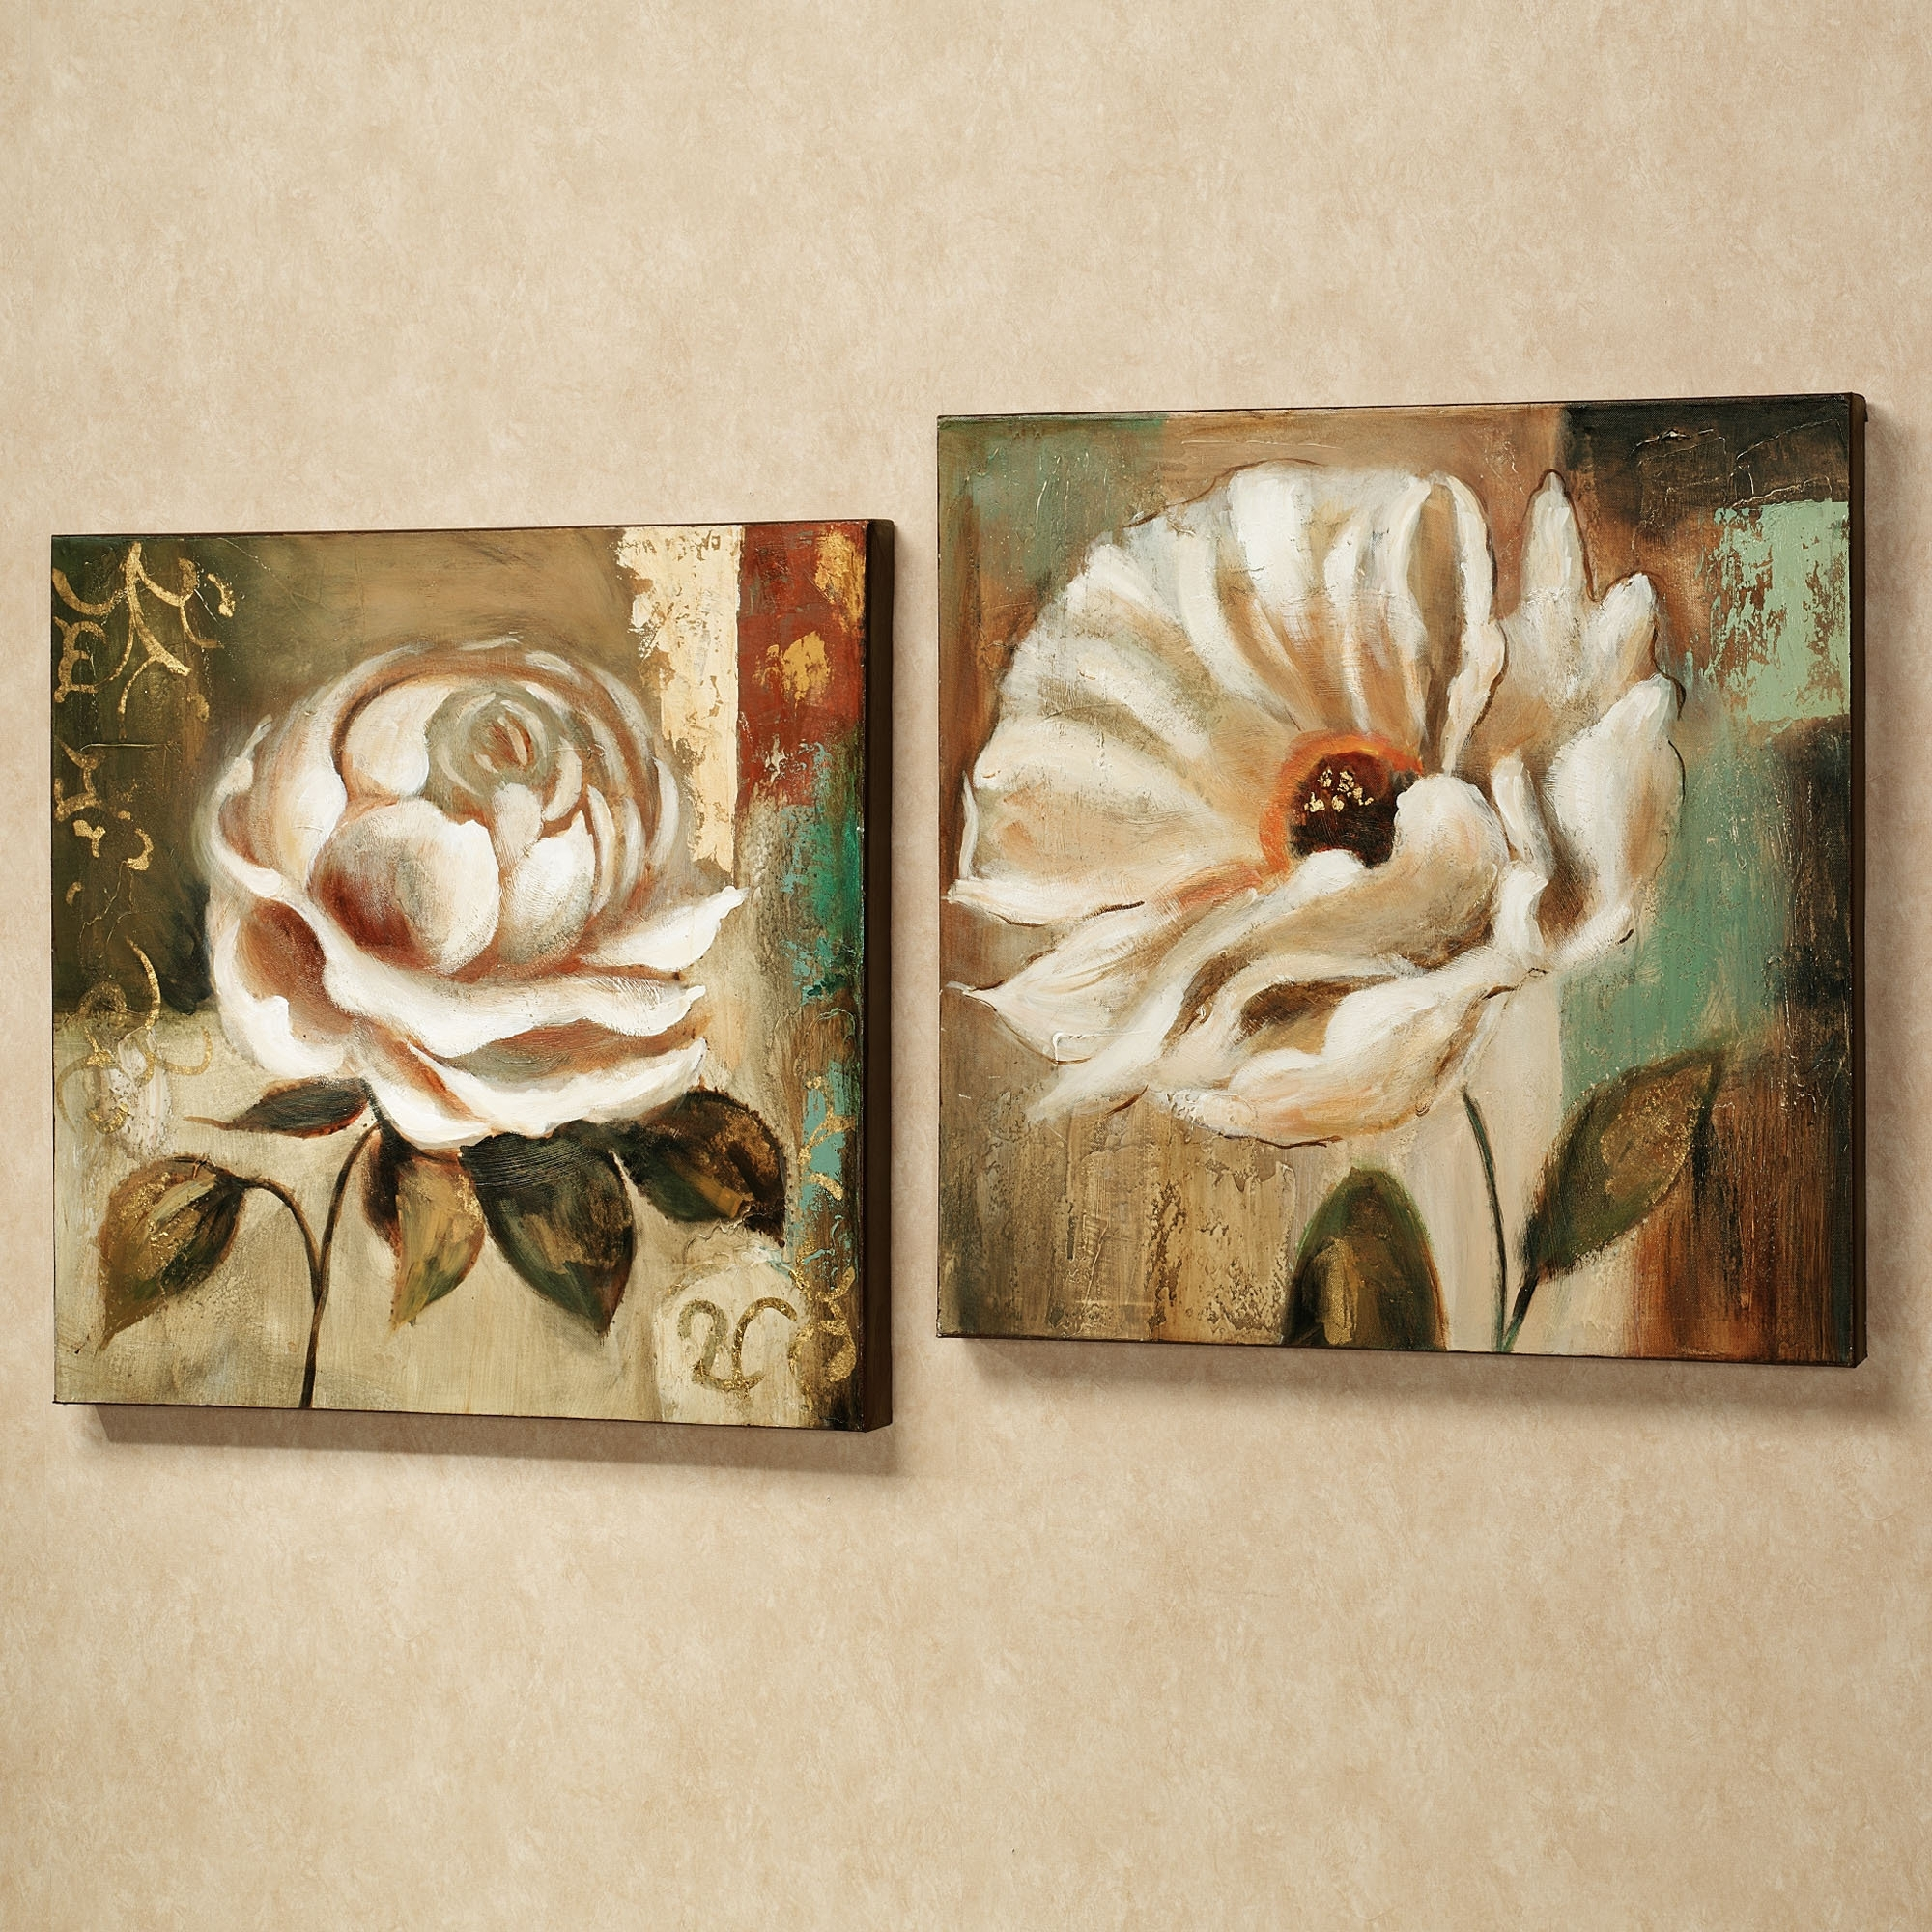 2017 Wall Art Designs: Wall Art Sets Pretty Ideas Floral Canvas Wall Inside Wall Art Sets For Living Room (View 3 of 15)